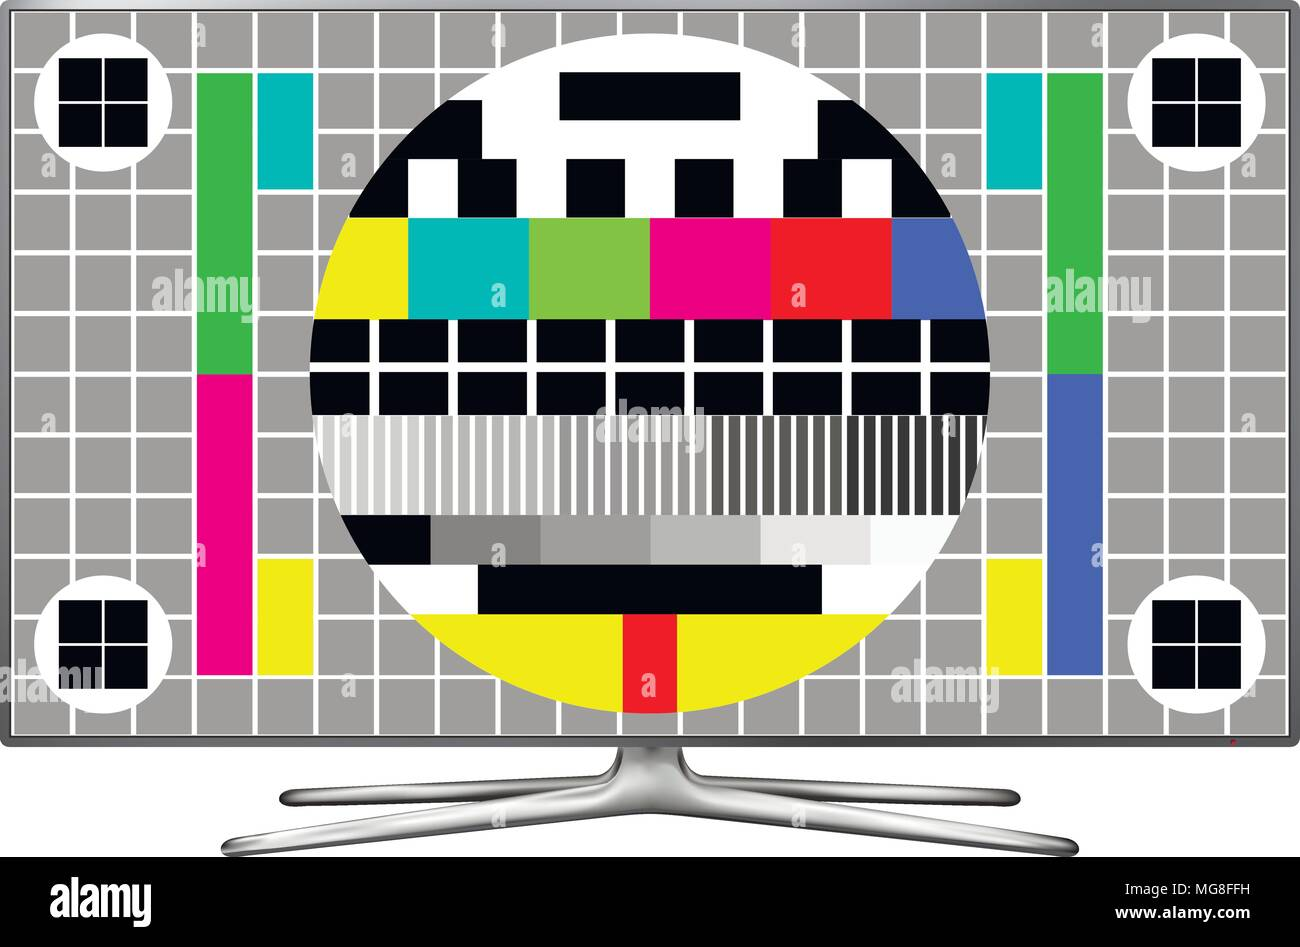 Test screen on modern LCD television. Vector illustration. - Stock Image